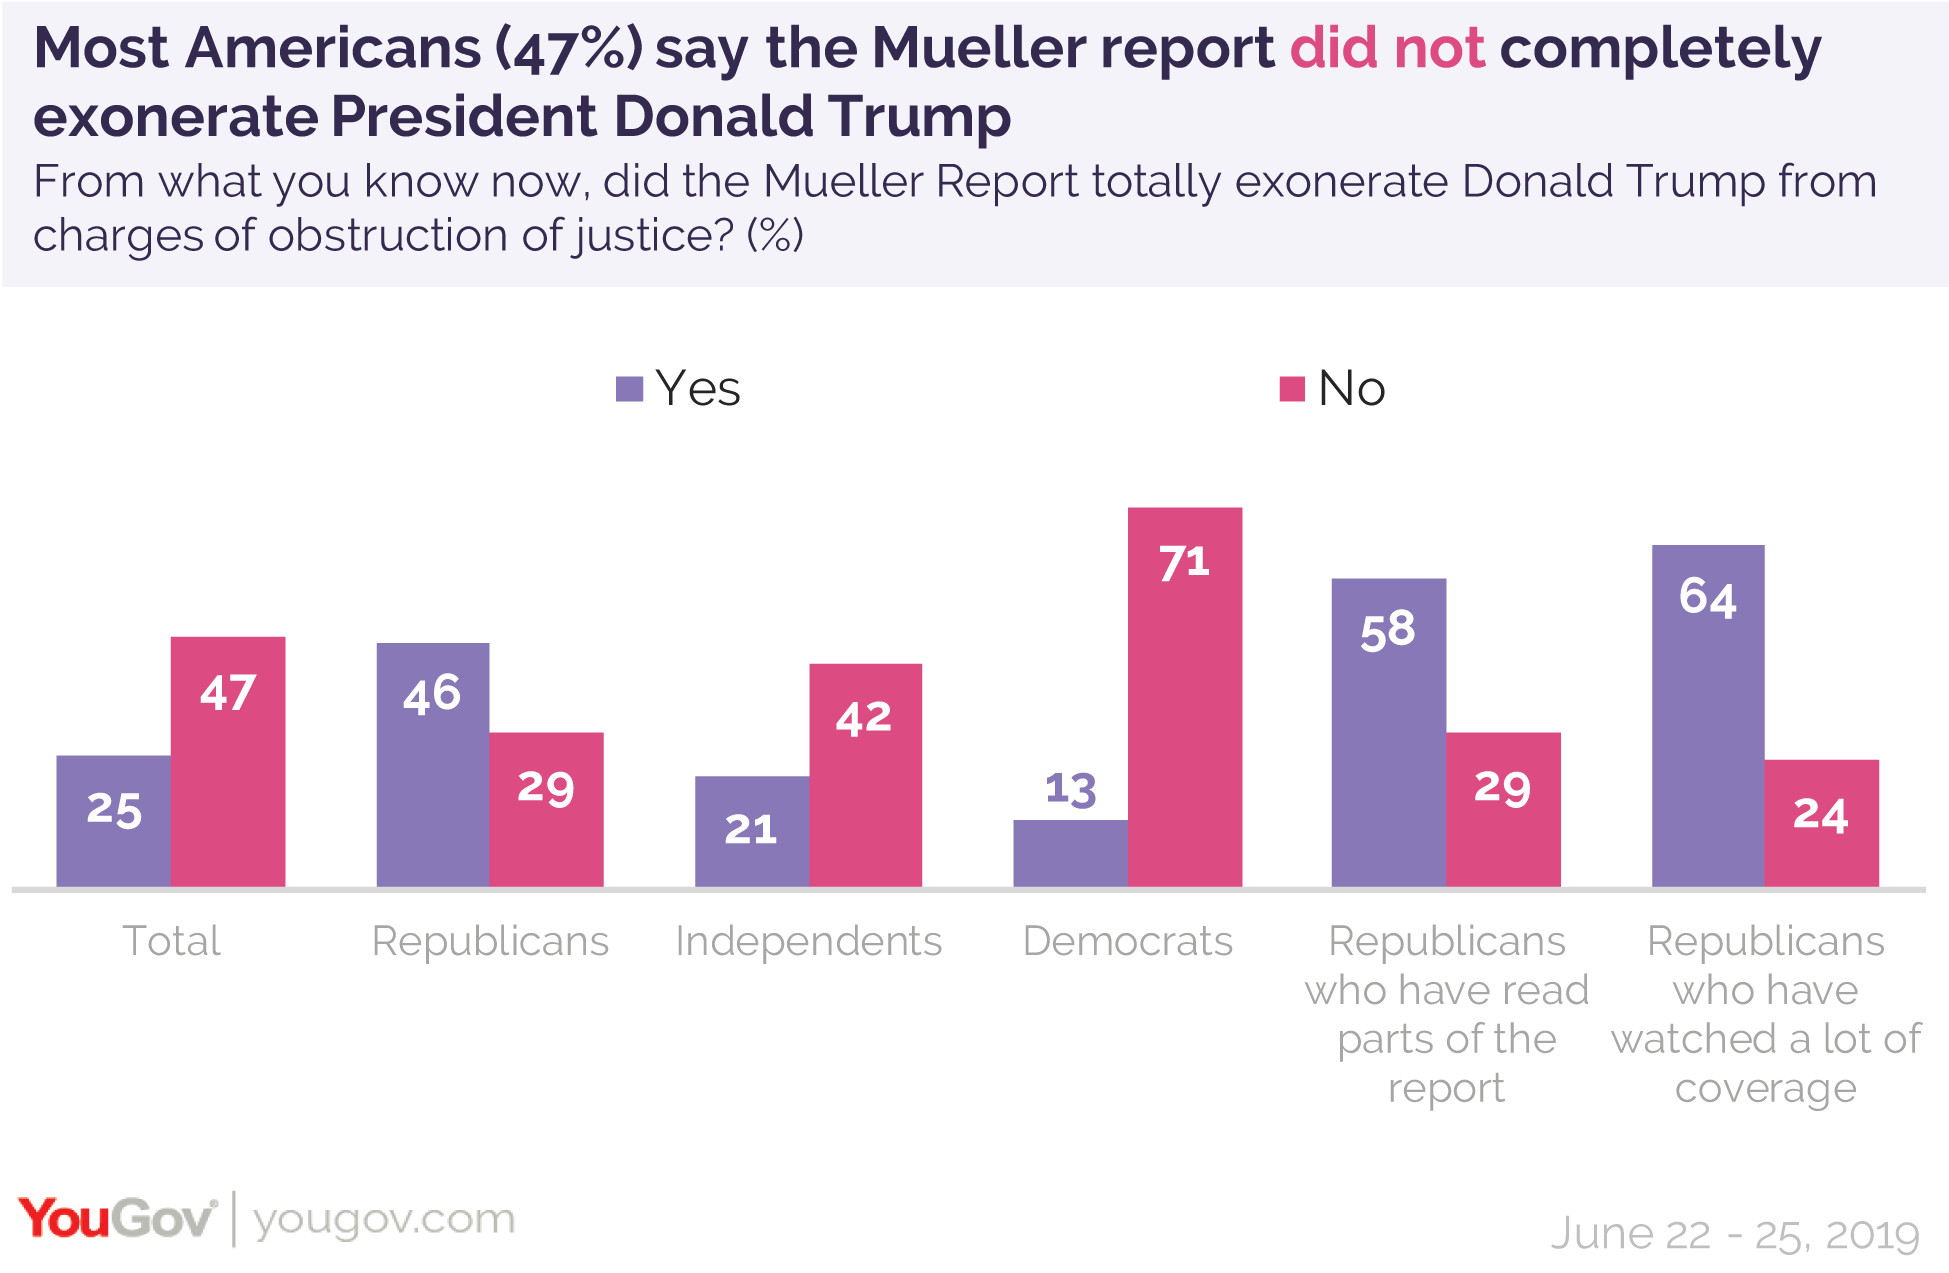 Most Americans say the Mueller report did not completely exonerate President Donald Trump of obstruction of justice